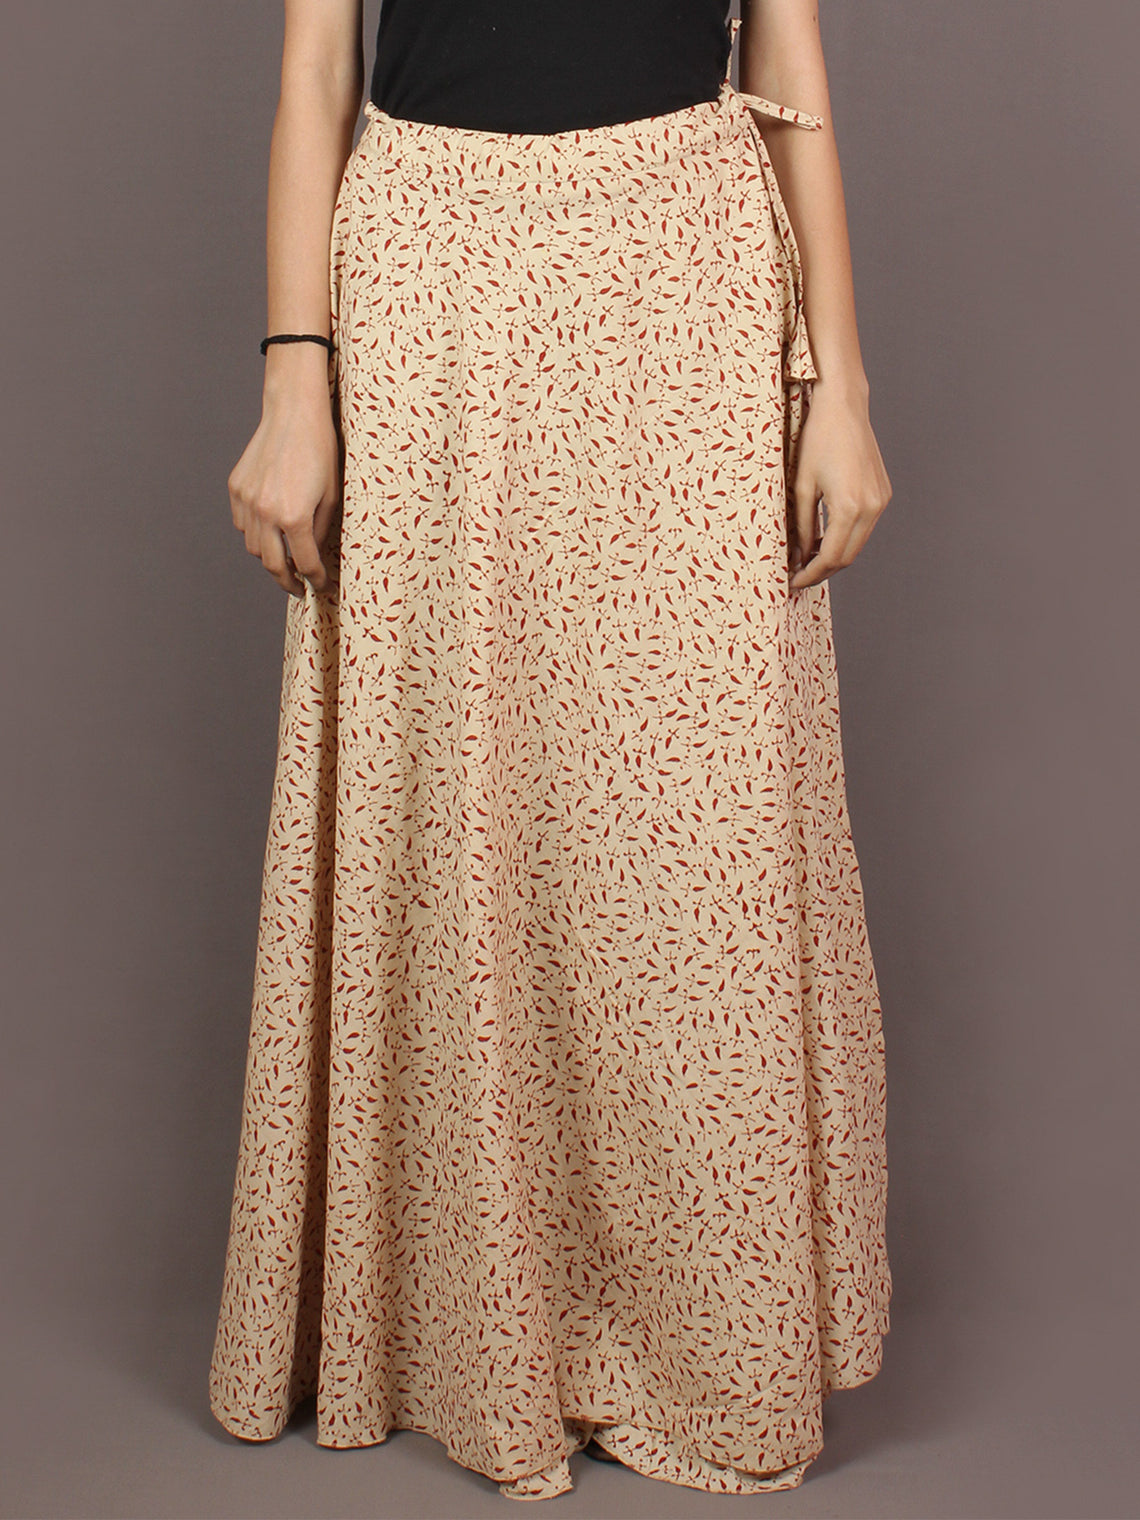 Hand Block Printed Wrap Around Skirt In Beige Maroon - S401003